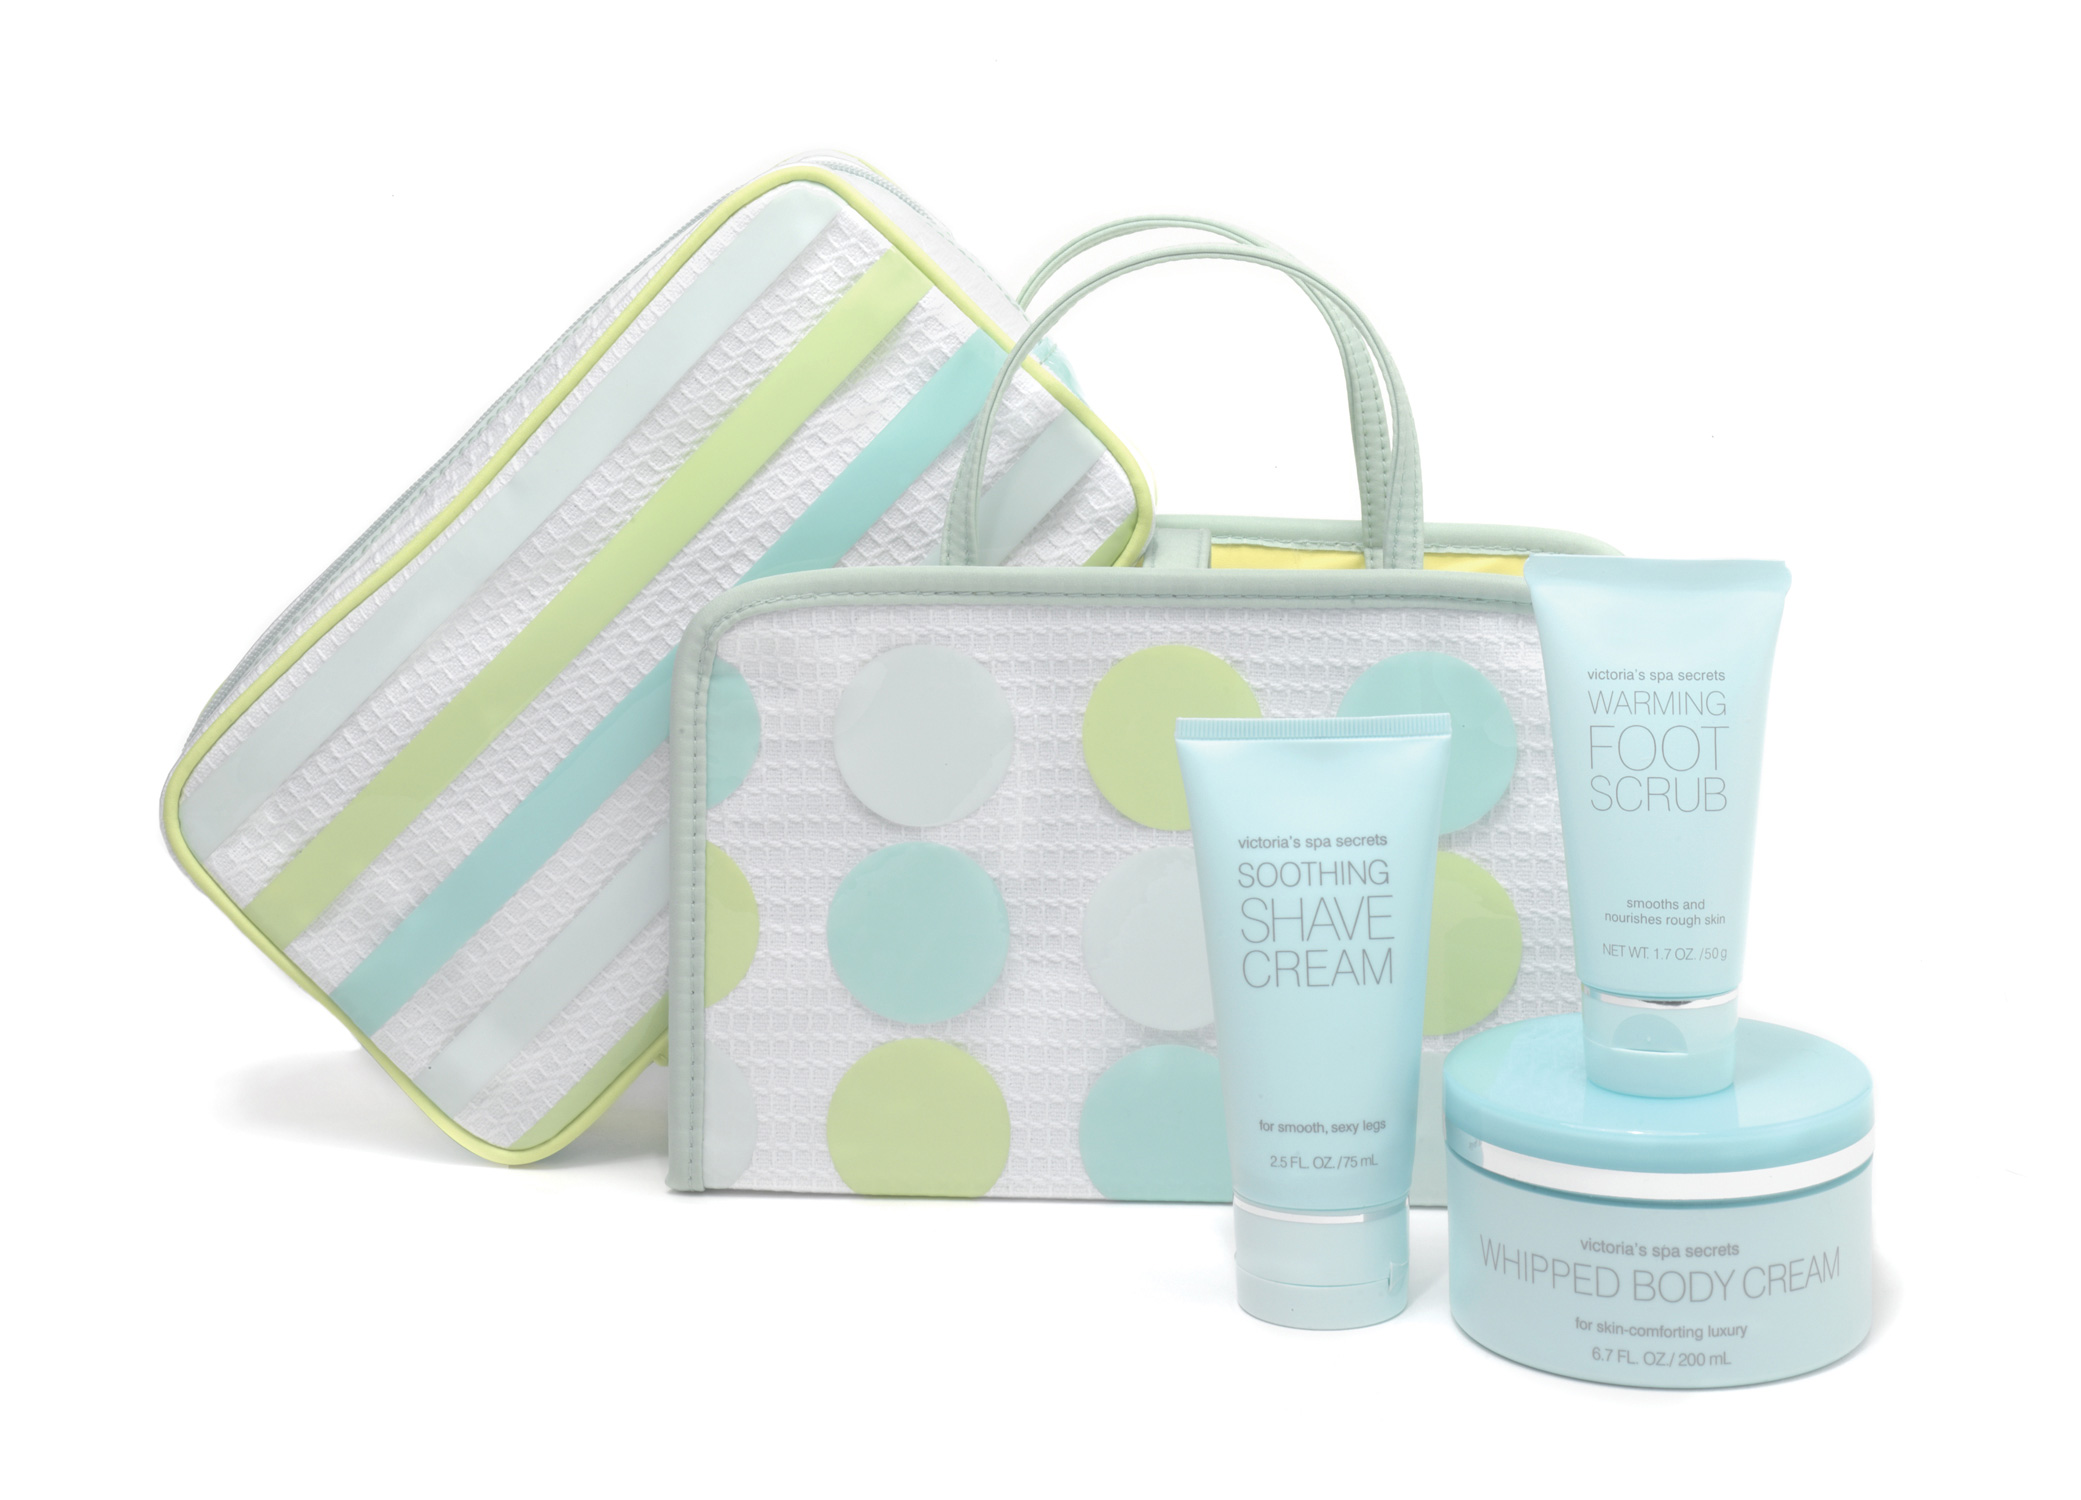 Victoria's Secret Spa Secrets gift bag design with lotions and pouches with bold polka dots and stripes.